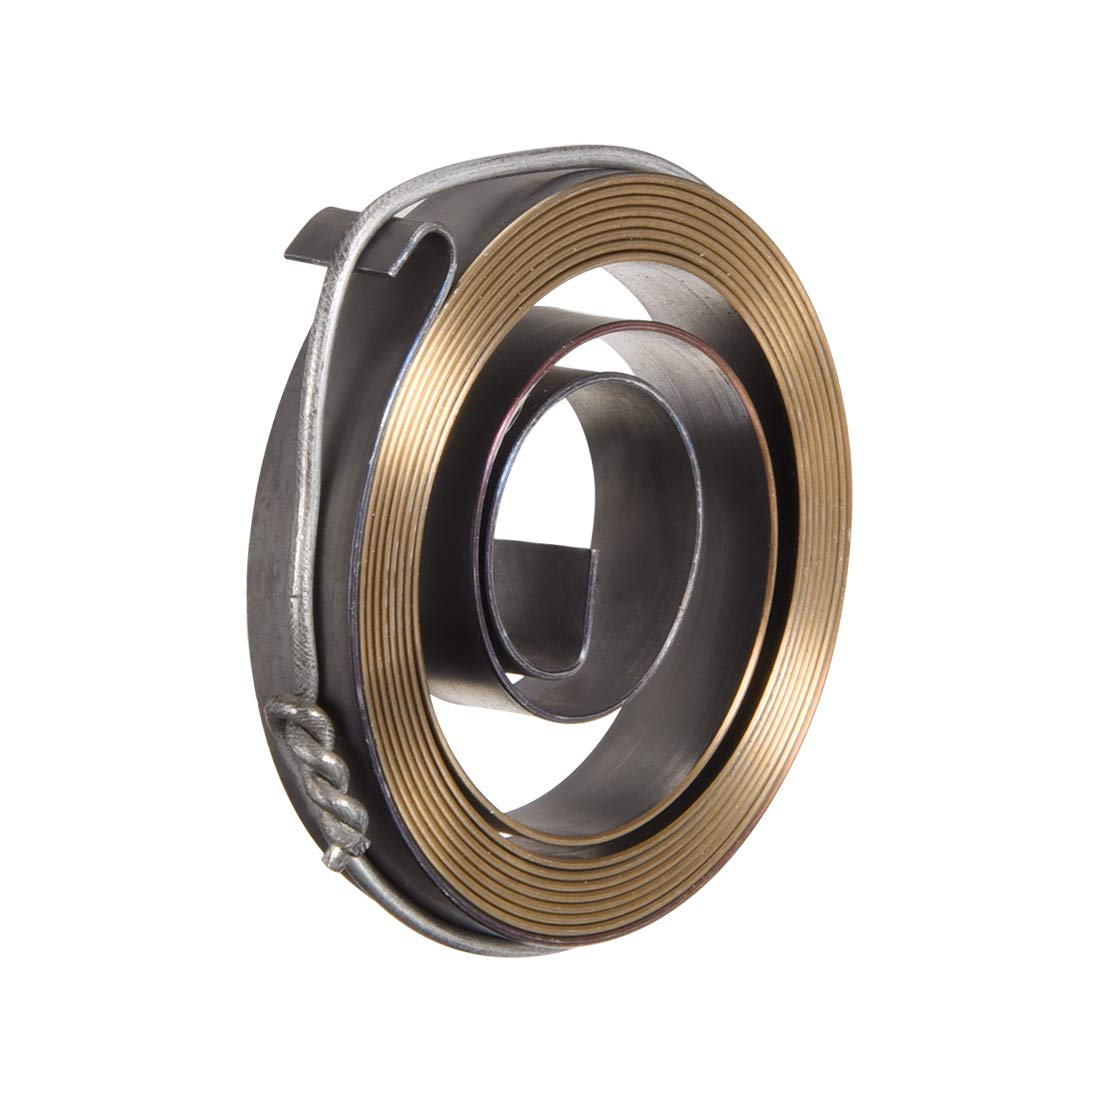 Quill Spring Feed Return Coil Spring Assembly 35 x 6 x 0.5mm 3PCS sourcing map Drill Press Return Spring 2.2Ft Long